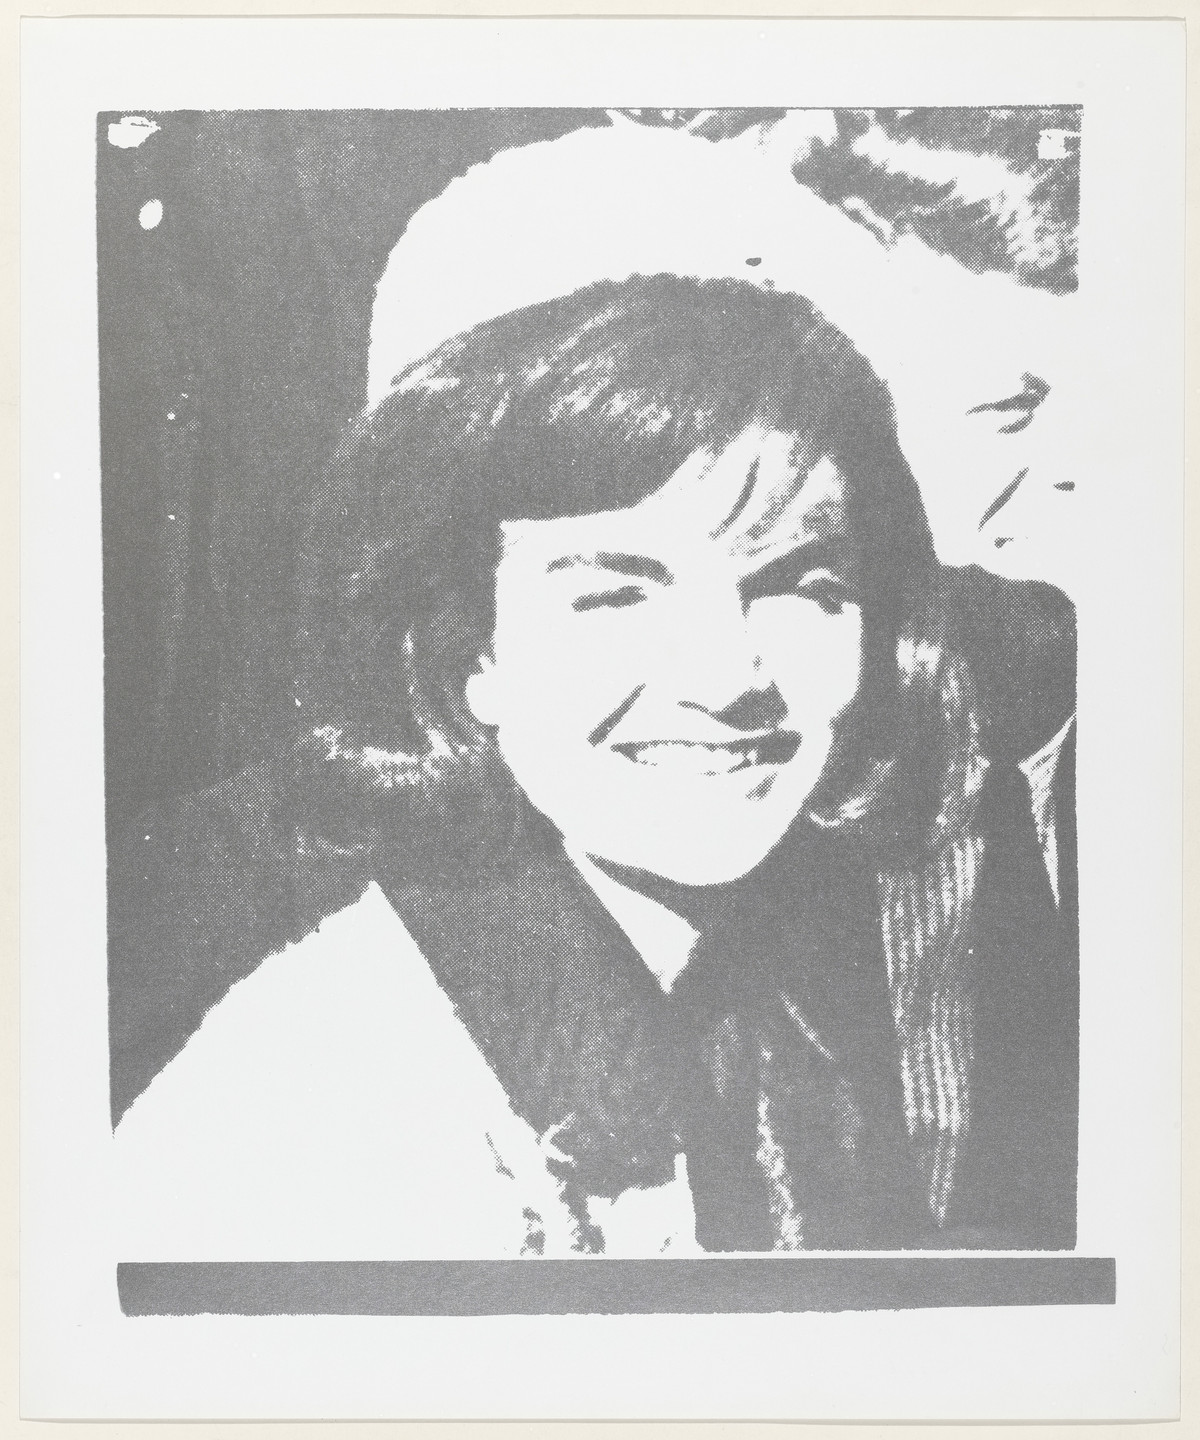 Andy Warhol. Jacqueline Kennedy I from 11 Pop Artists, Volume I. 1965, published 1966